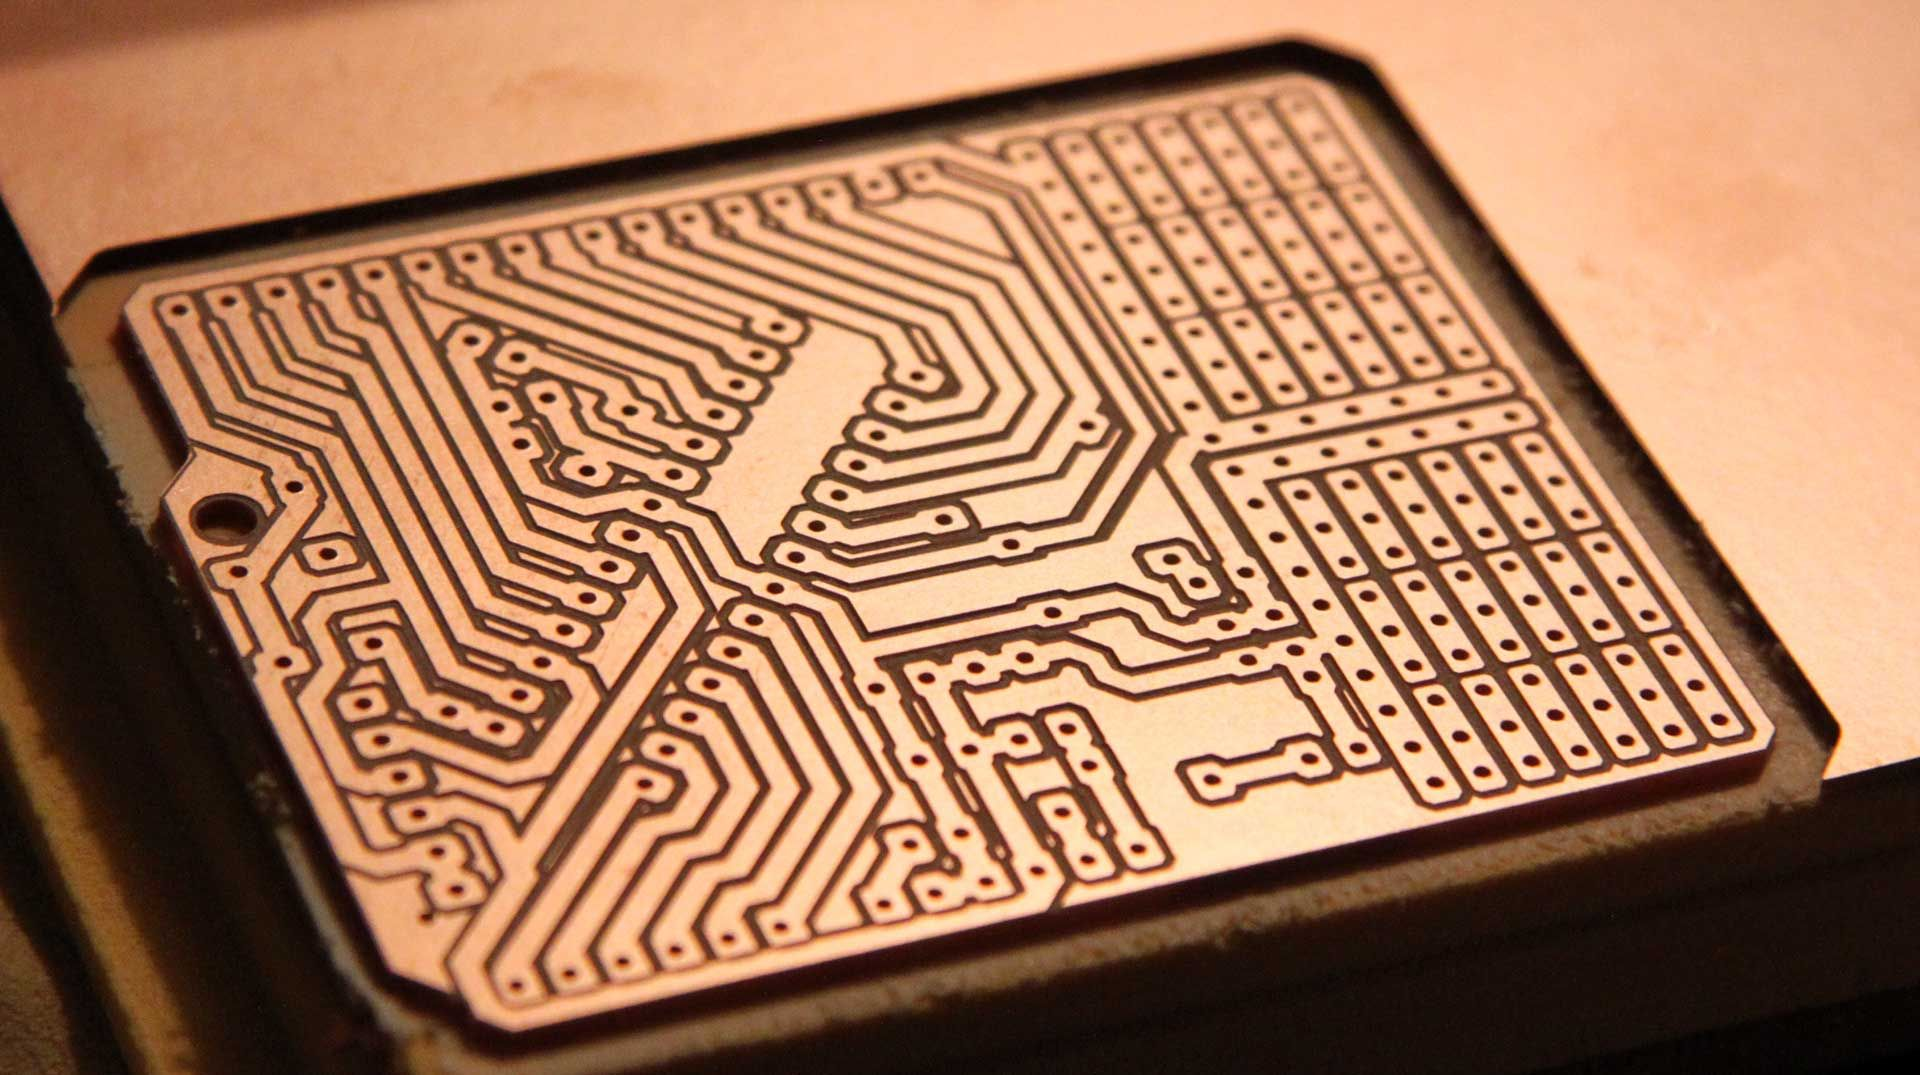 Diy Circuit Board Projects Homemade Pcb Etching Theory Pyroelectro News Nanino The Friendly Arduino Johan Von Konow Concept